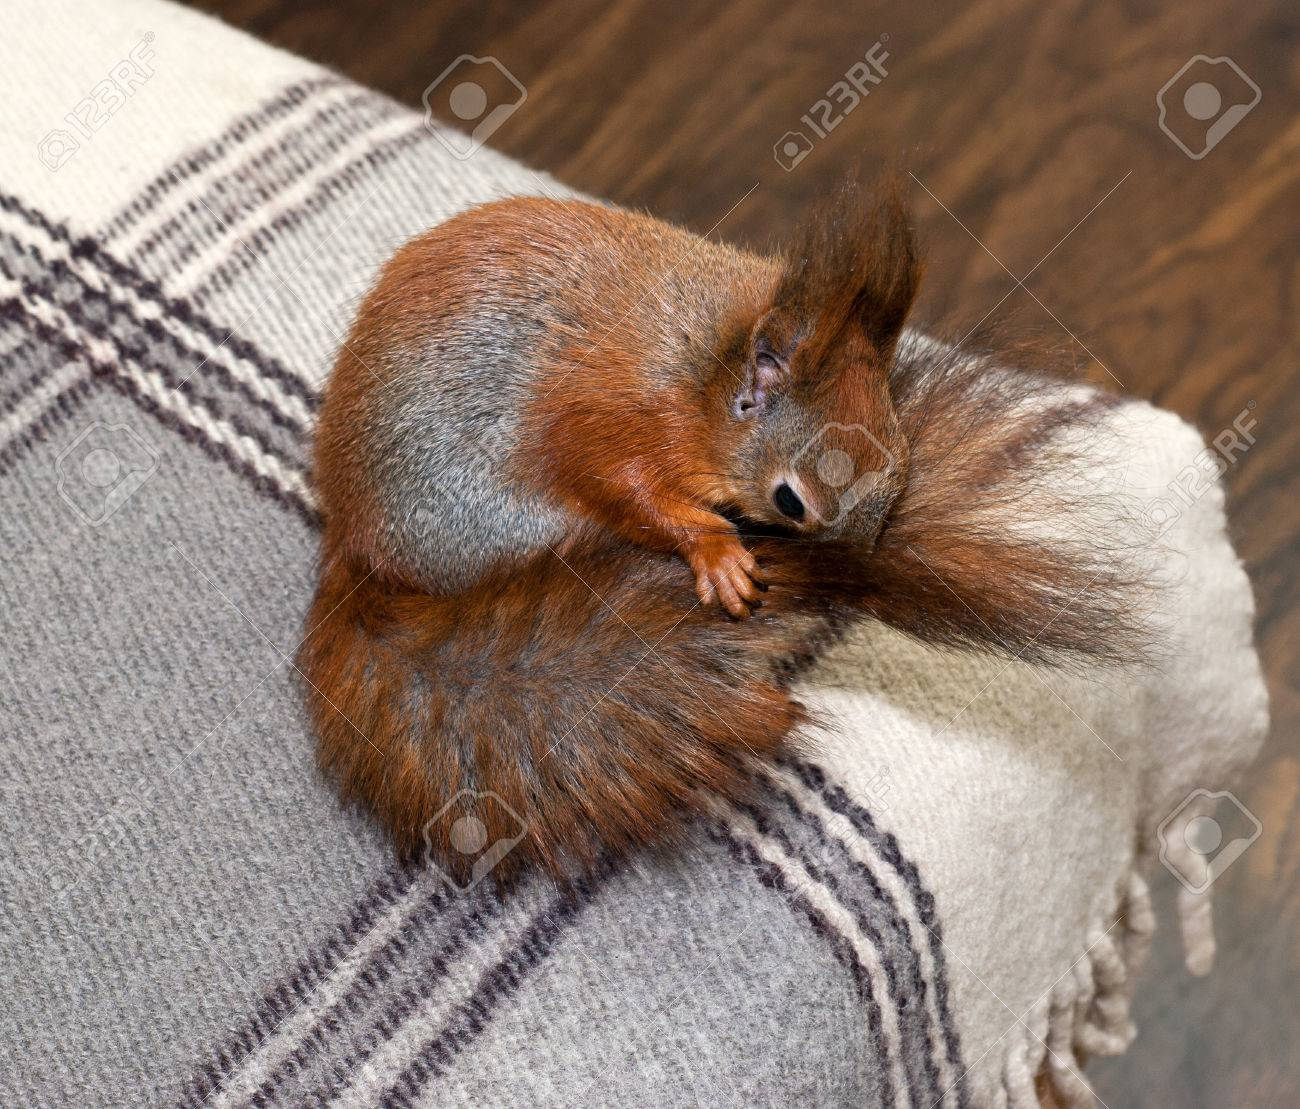 Red squirrel in the house Stock Photo - 24527850